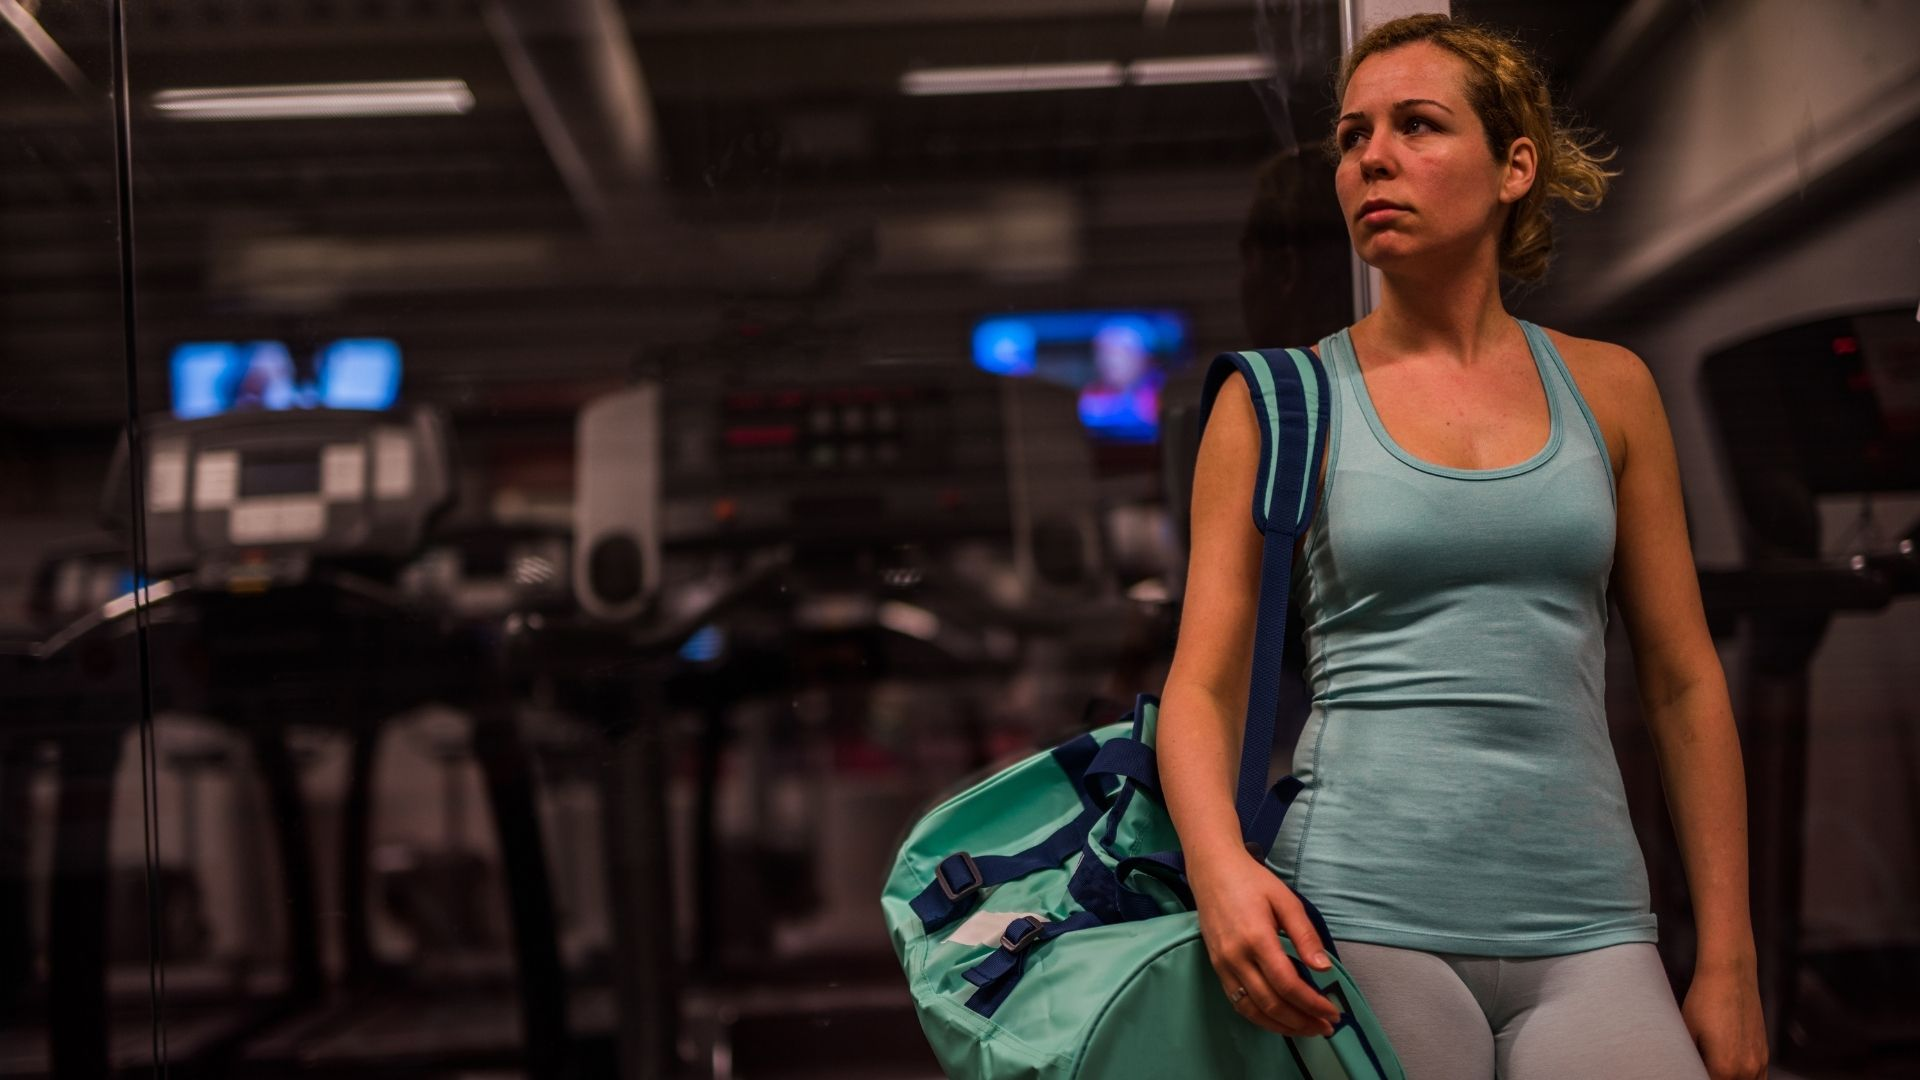 woman leavegym - Before you quit the gym, read this